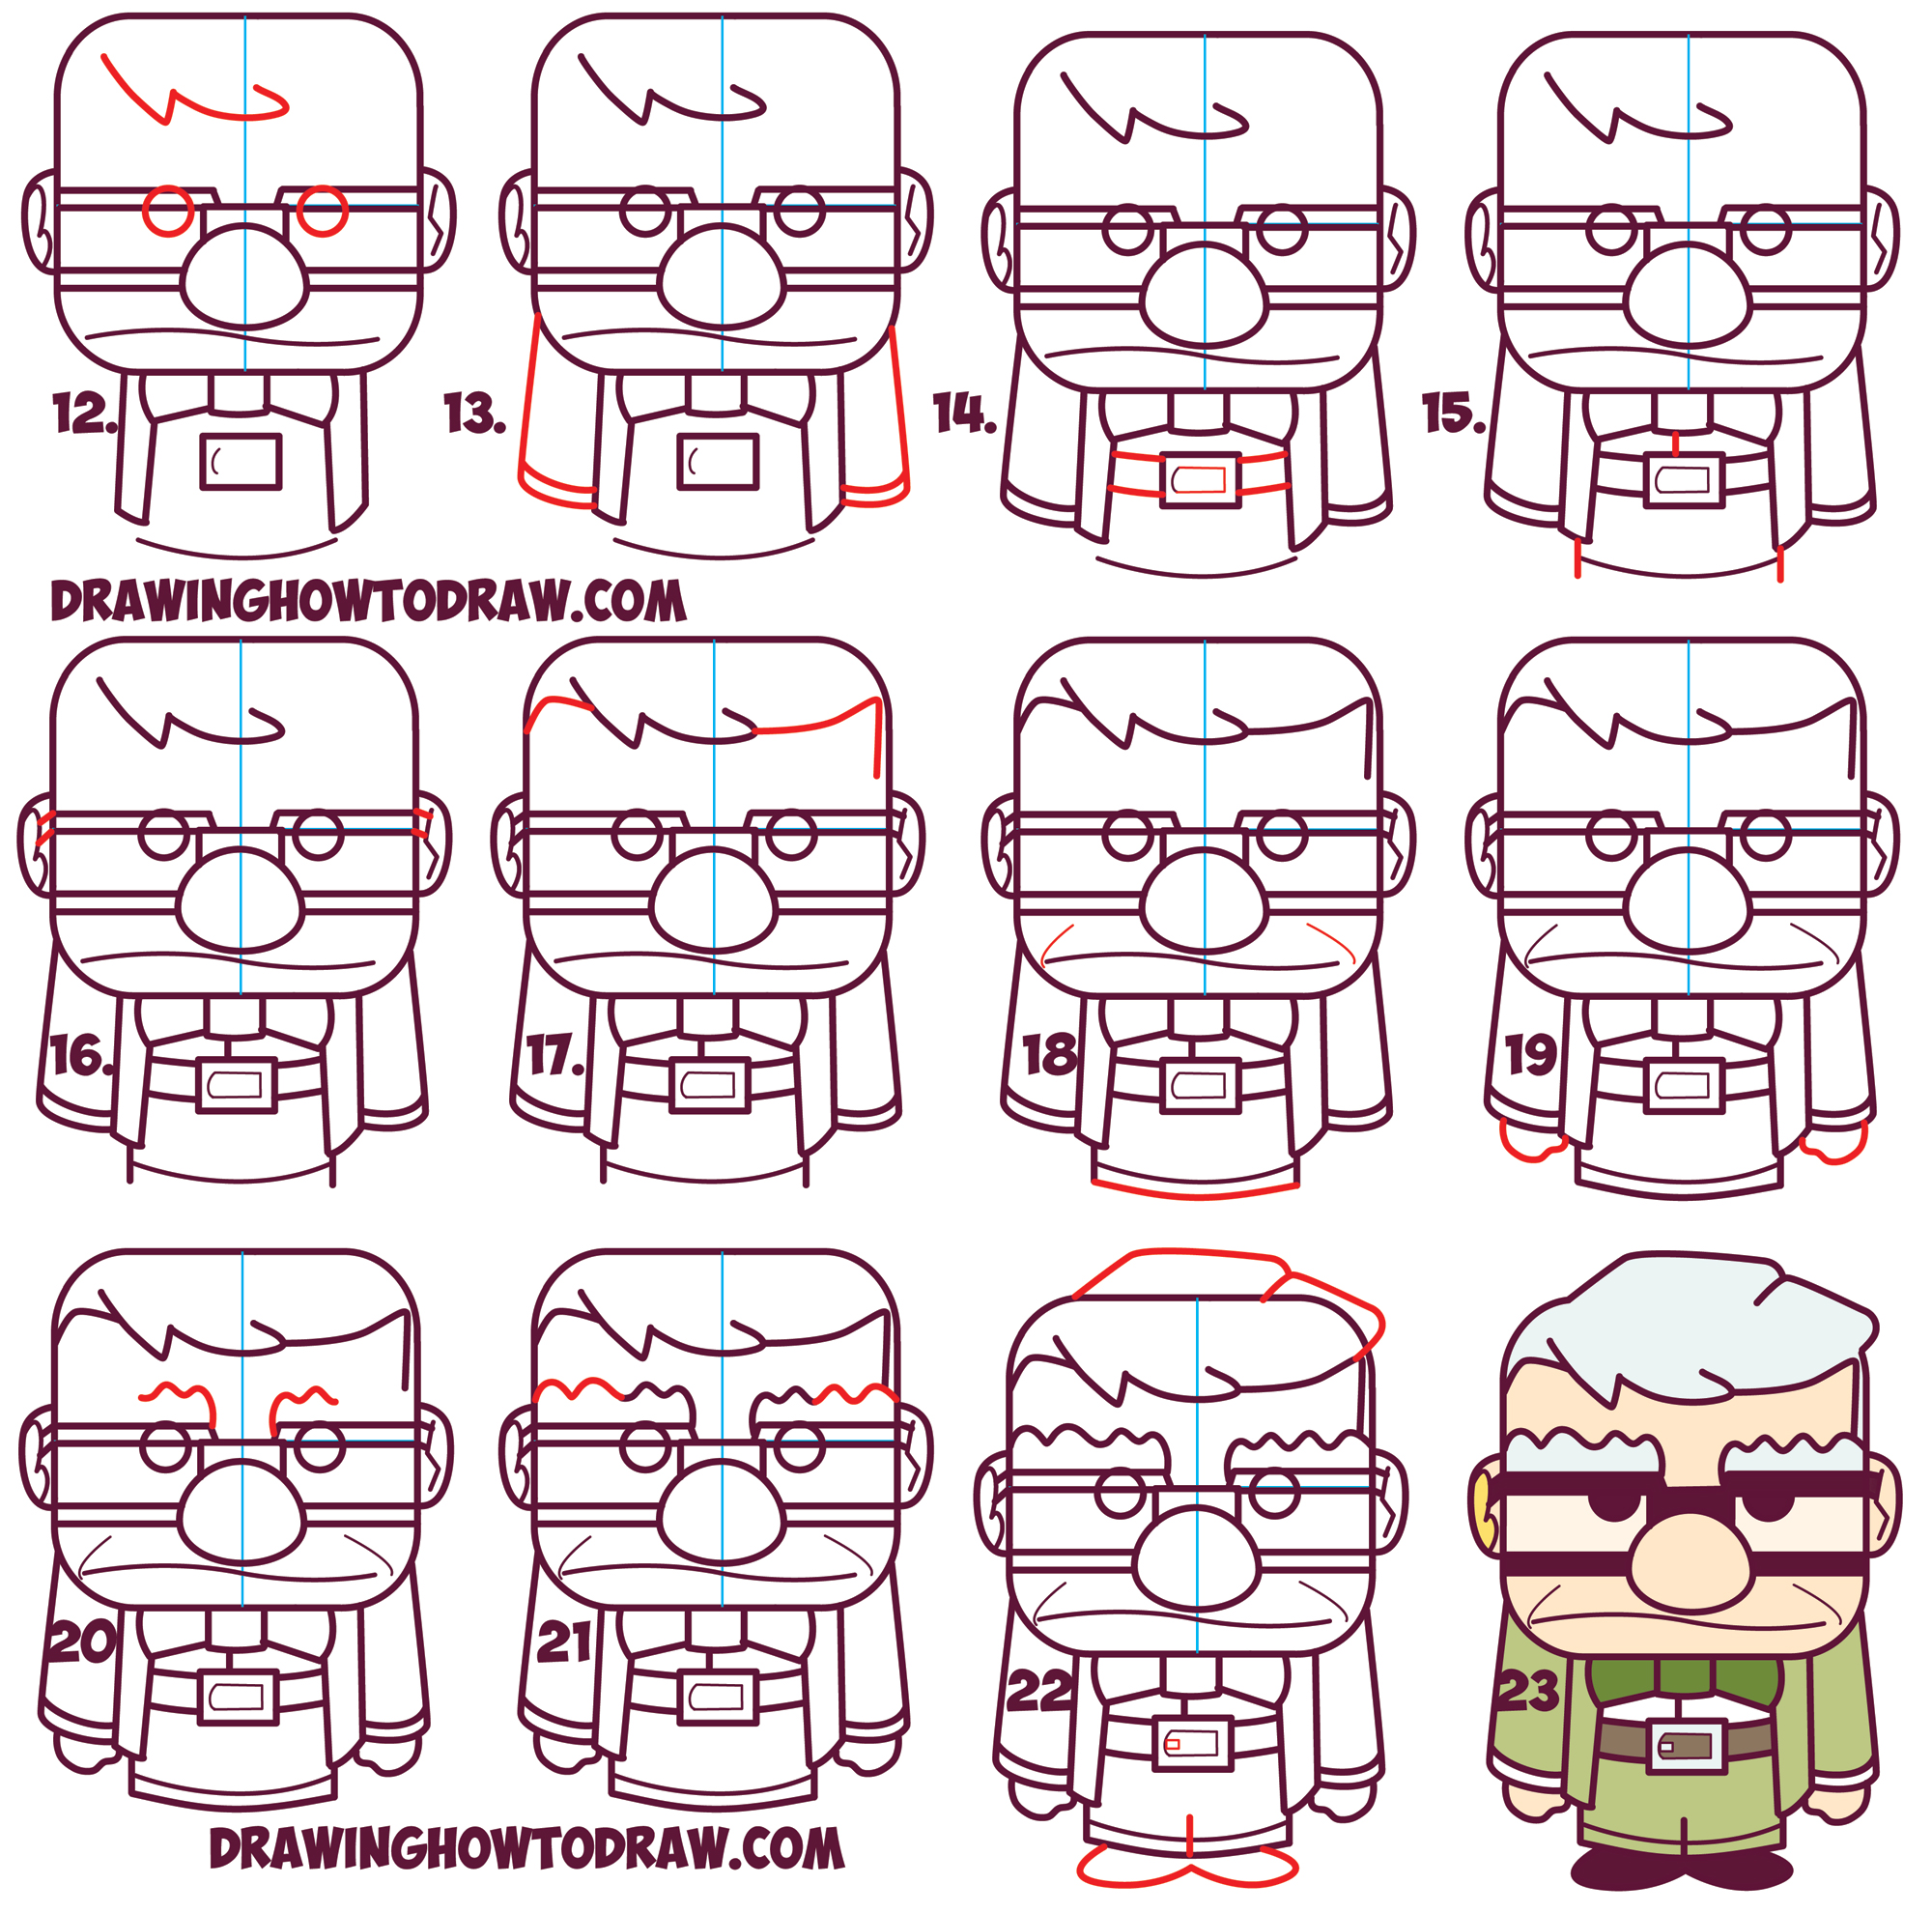 Learn How to Draw Carl Fredricksen the Old Man from Disney Pixar's Up (Cute / Chibi) Simple Drawing Lesson for Kids